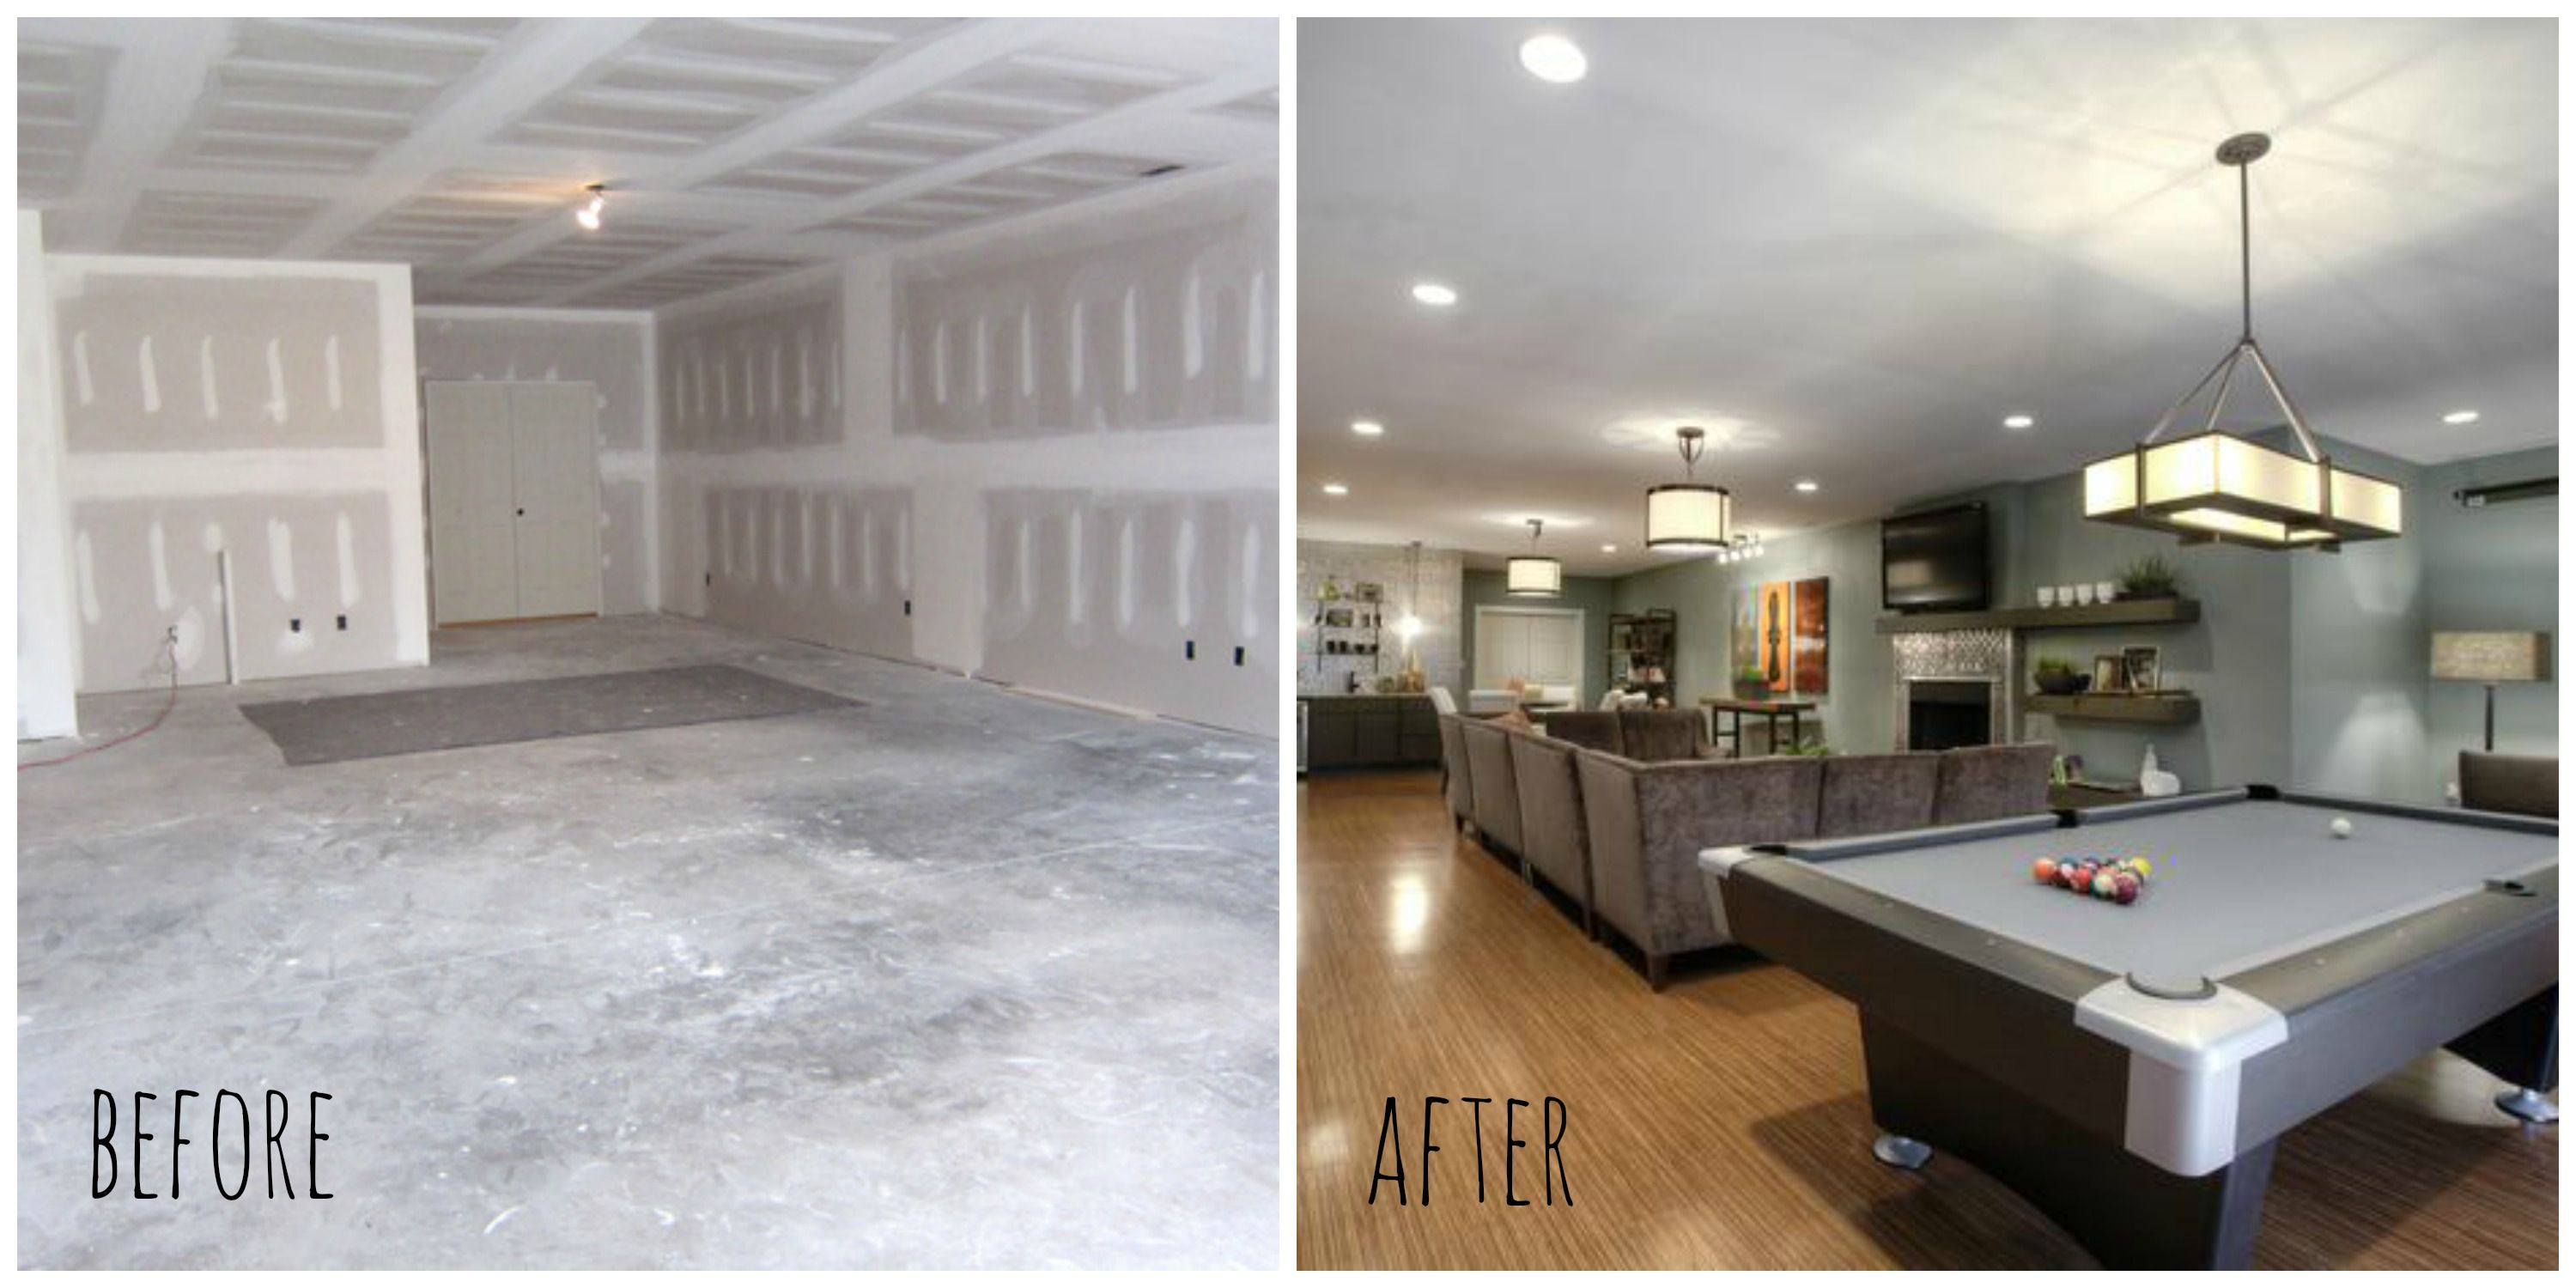 Basement renovation before after before after Small bedroom renovation ideas